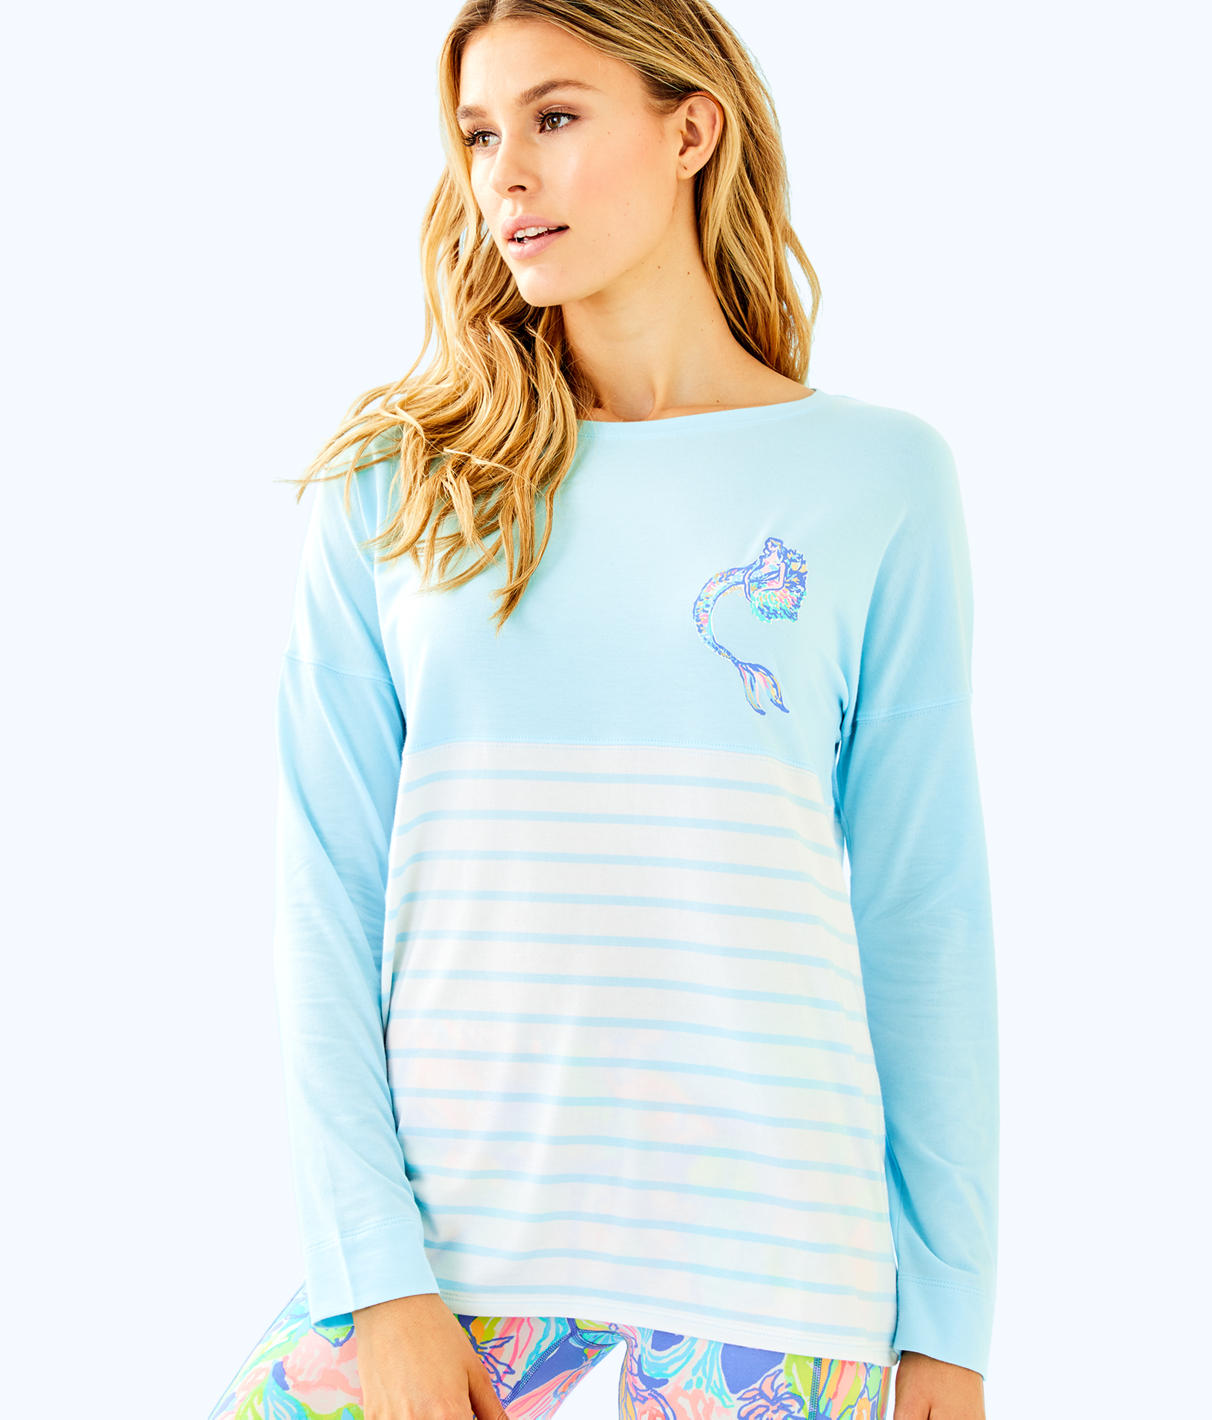 Lilly Pulitzer Lilly Pulitzer Womens Finn Tee